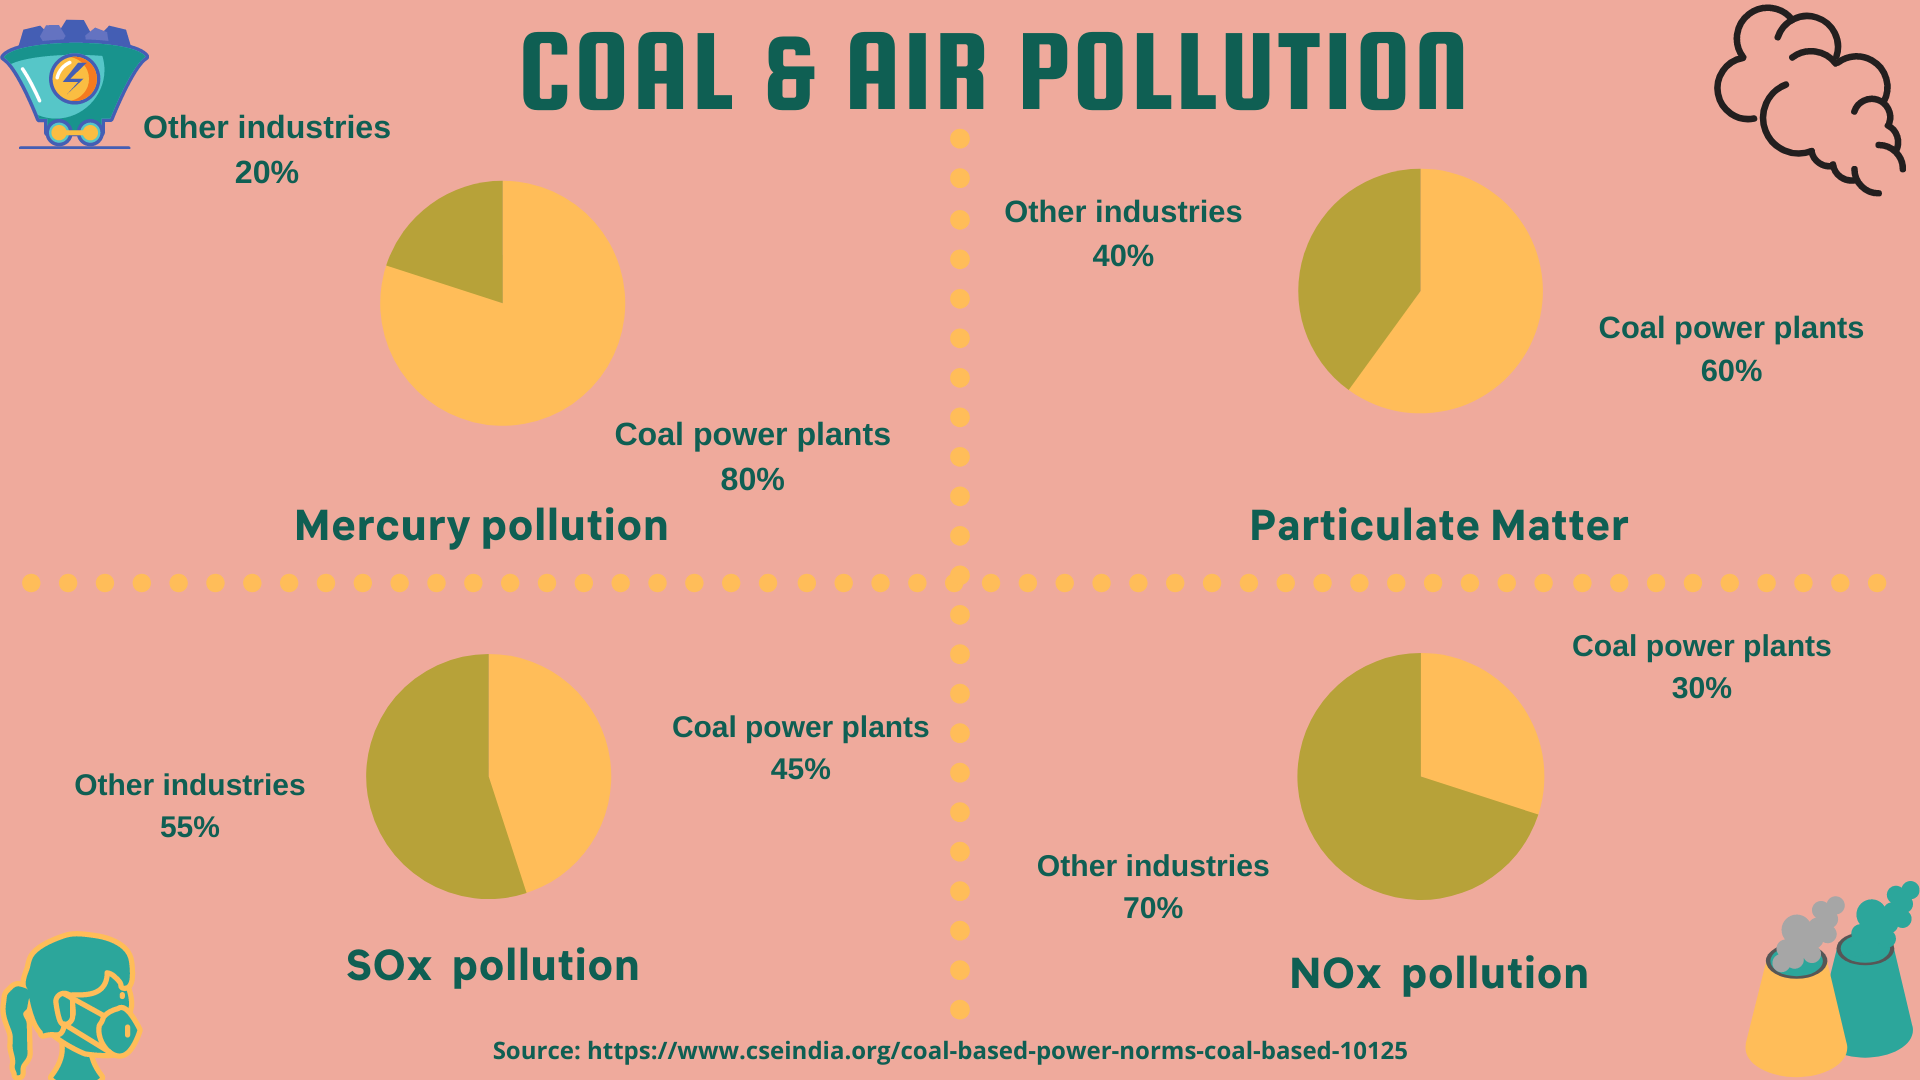 Coal and Air pollution 1